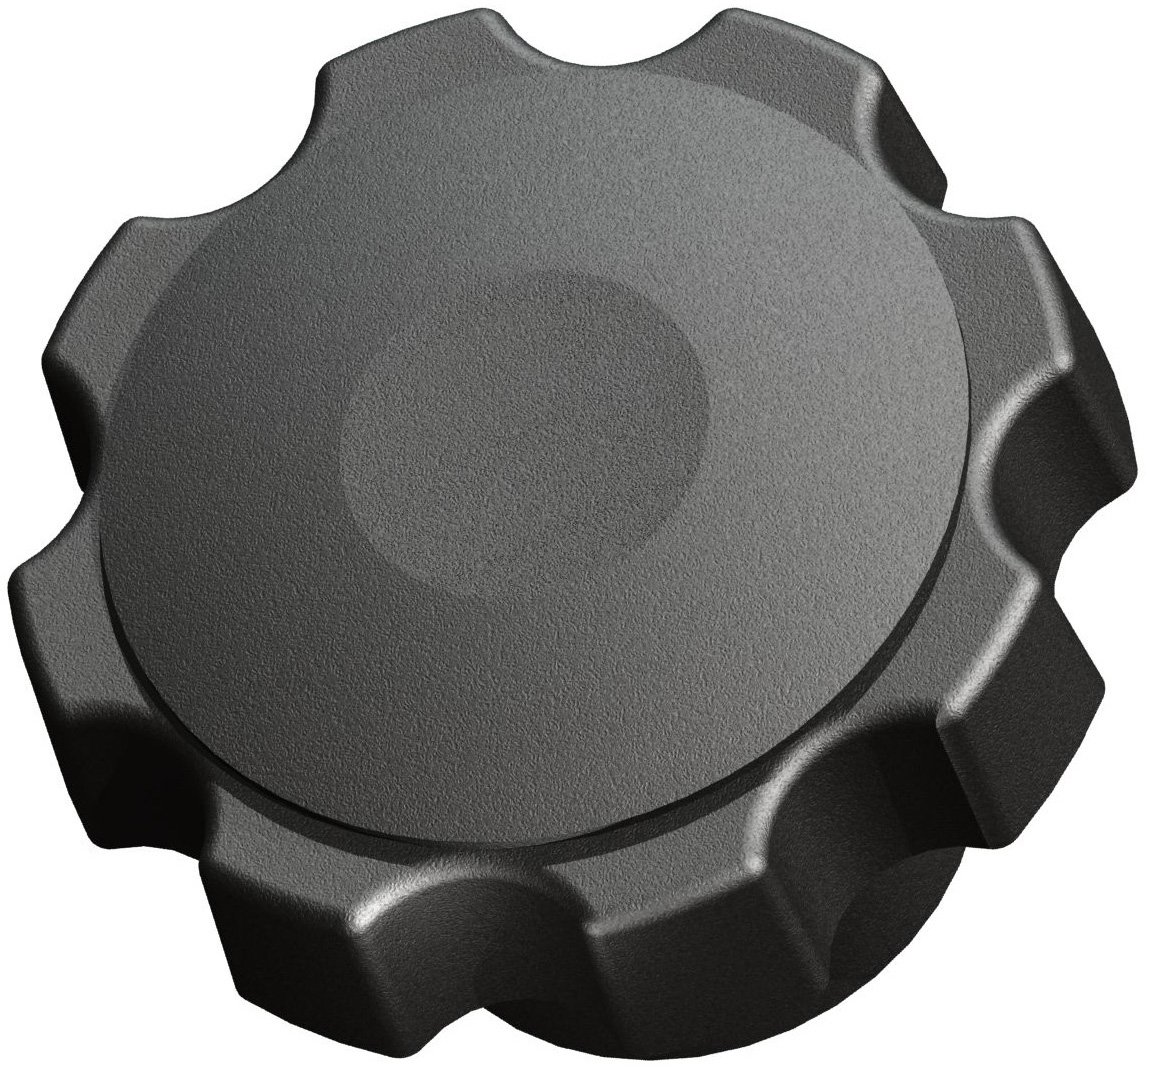 Innovative Components AN4C-F6-B-21 2.38'' Fluted knob blind 1/4-20 steel zinc insert black pp (Pack of 10)